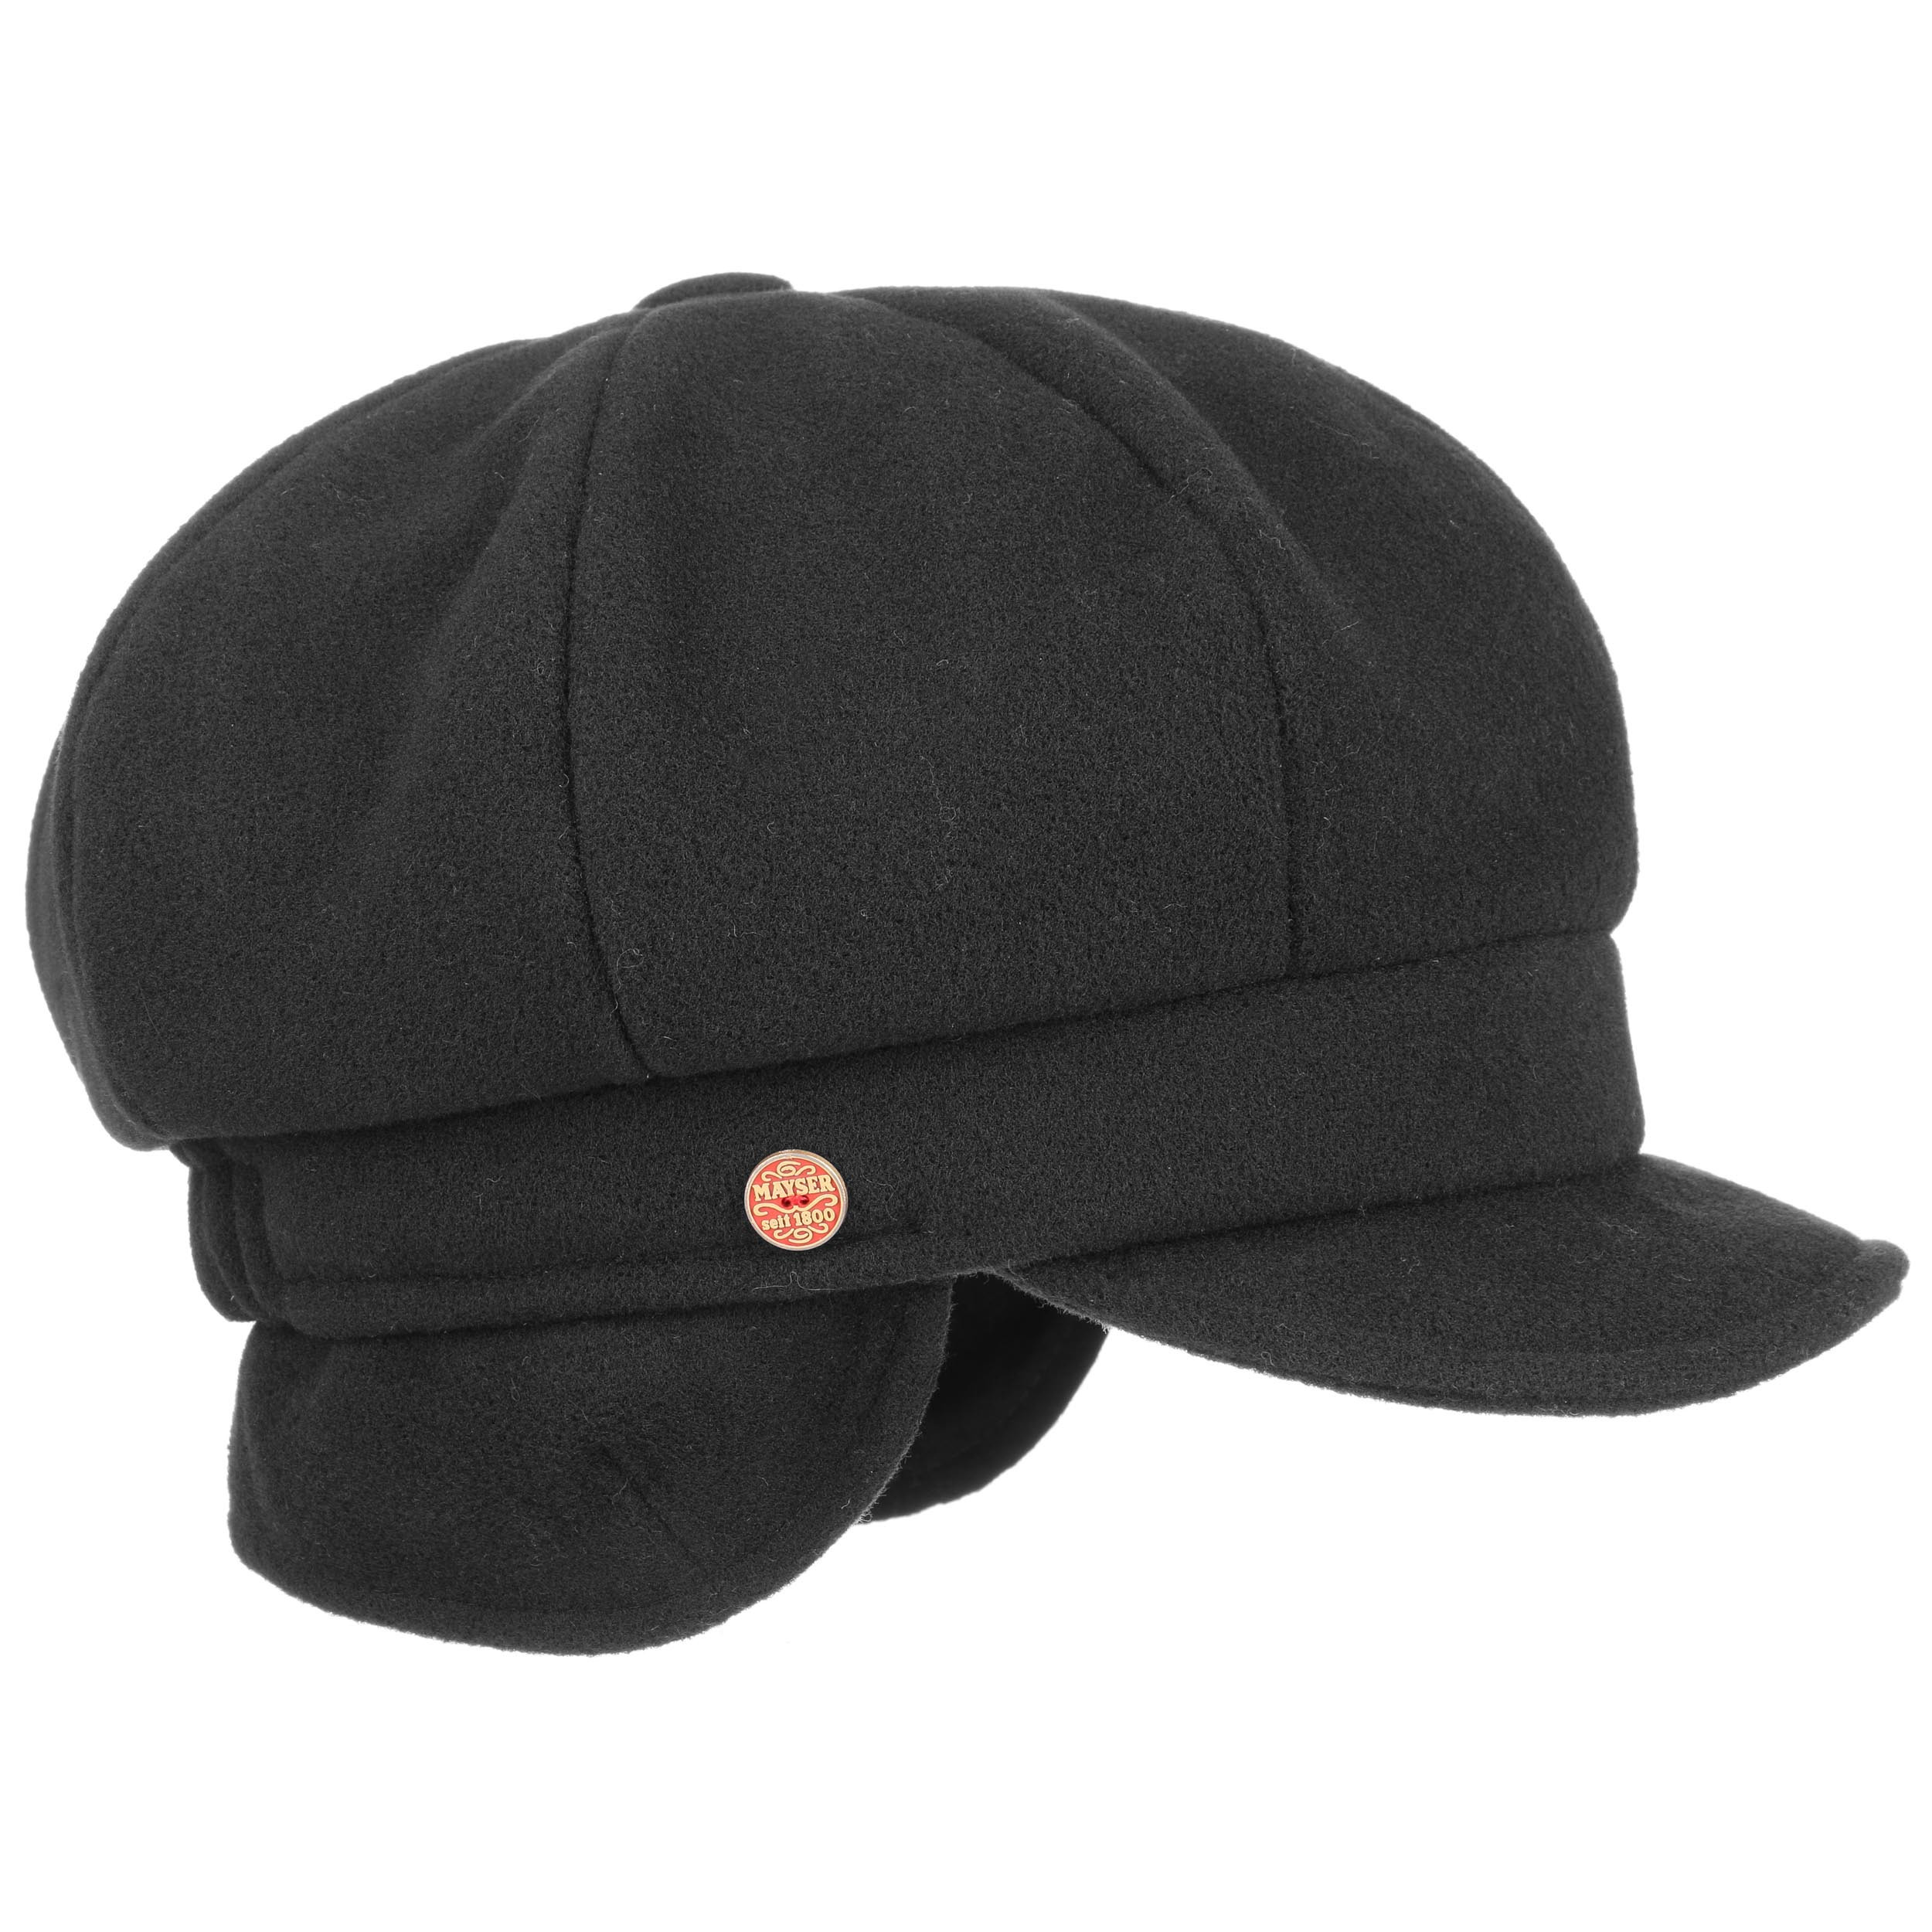 Hat with Ear Flaps Awesome Camilla Newsboy Cap with Ear Flaps by Mayser Eur 79 95 Of Top 42 Photos Hat with Ear Flaps